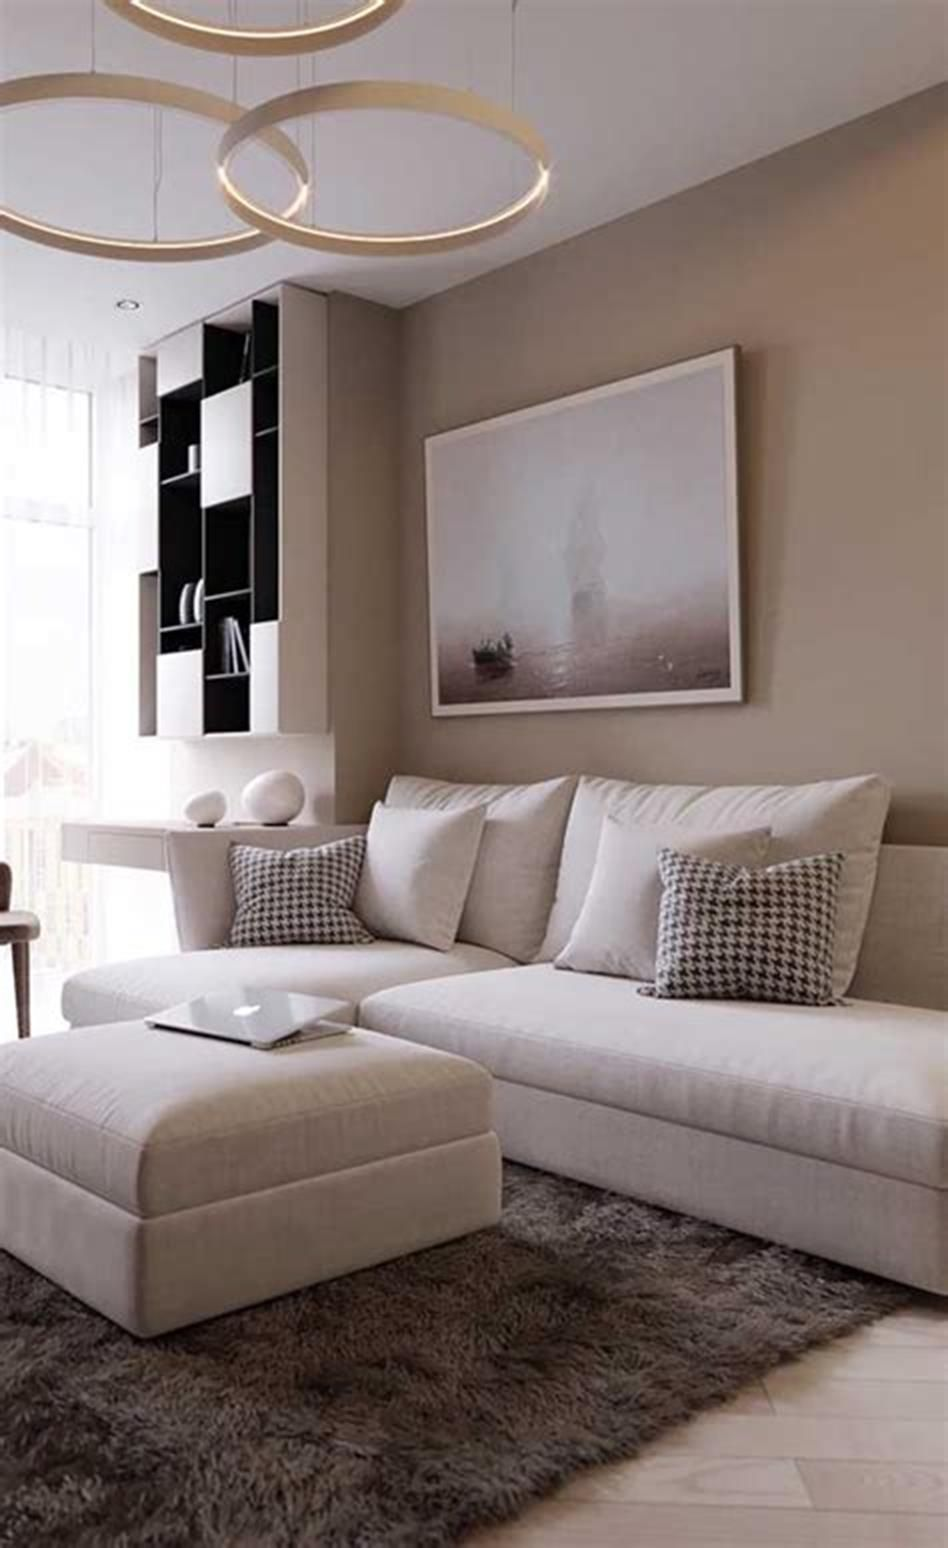 26 Amazing Simple Decorating Ideas For Small Living Room 2020